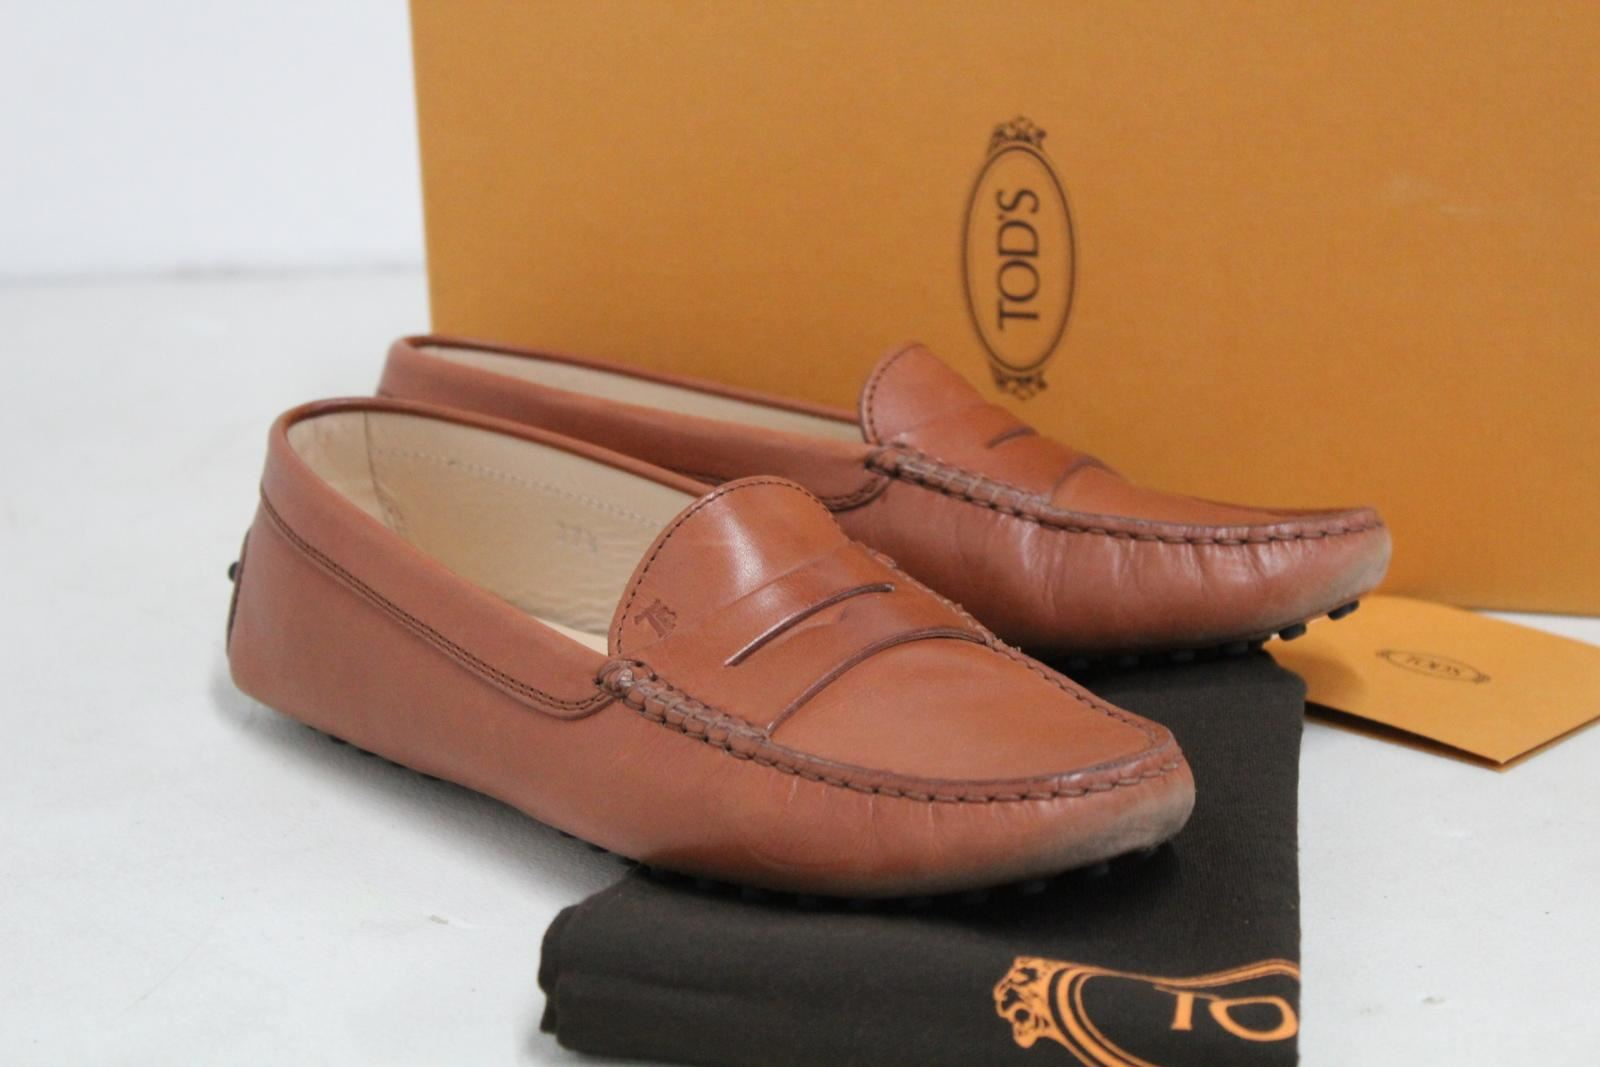 TODS-Ladies-Light-Brown-Flat-Shoes-Gommini-Mocassino-Loafers-UK-5-EU37-5